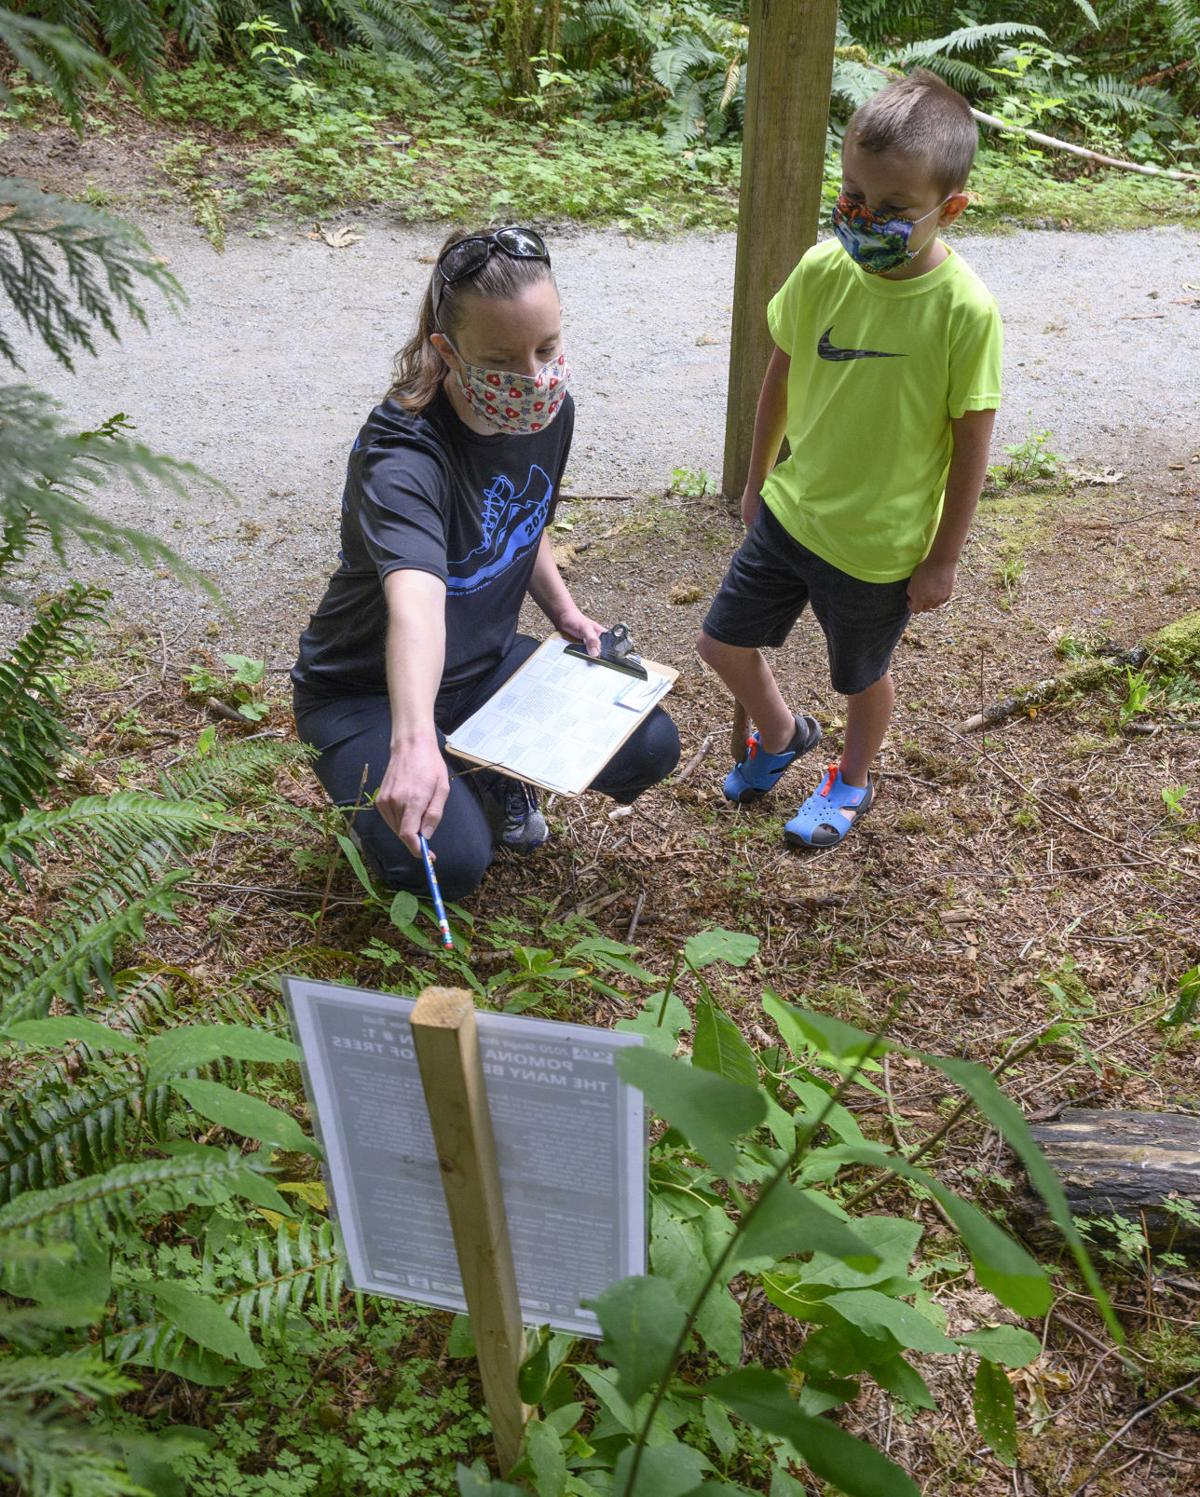 Letterboxing trails